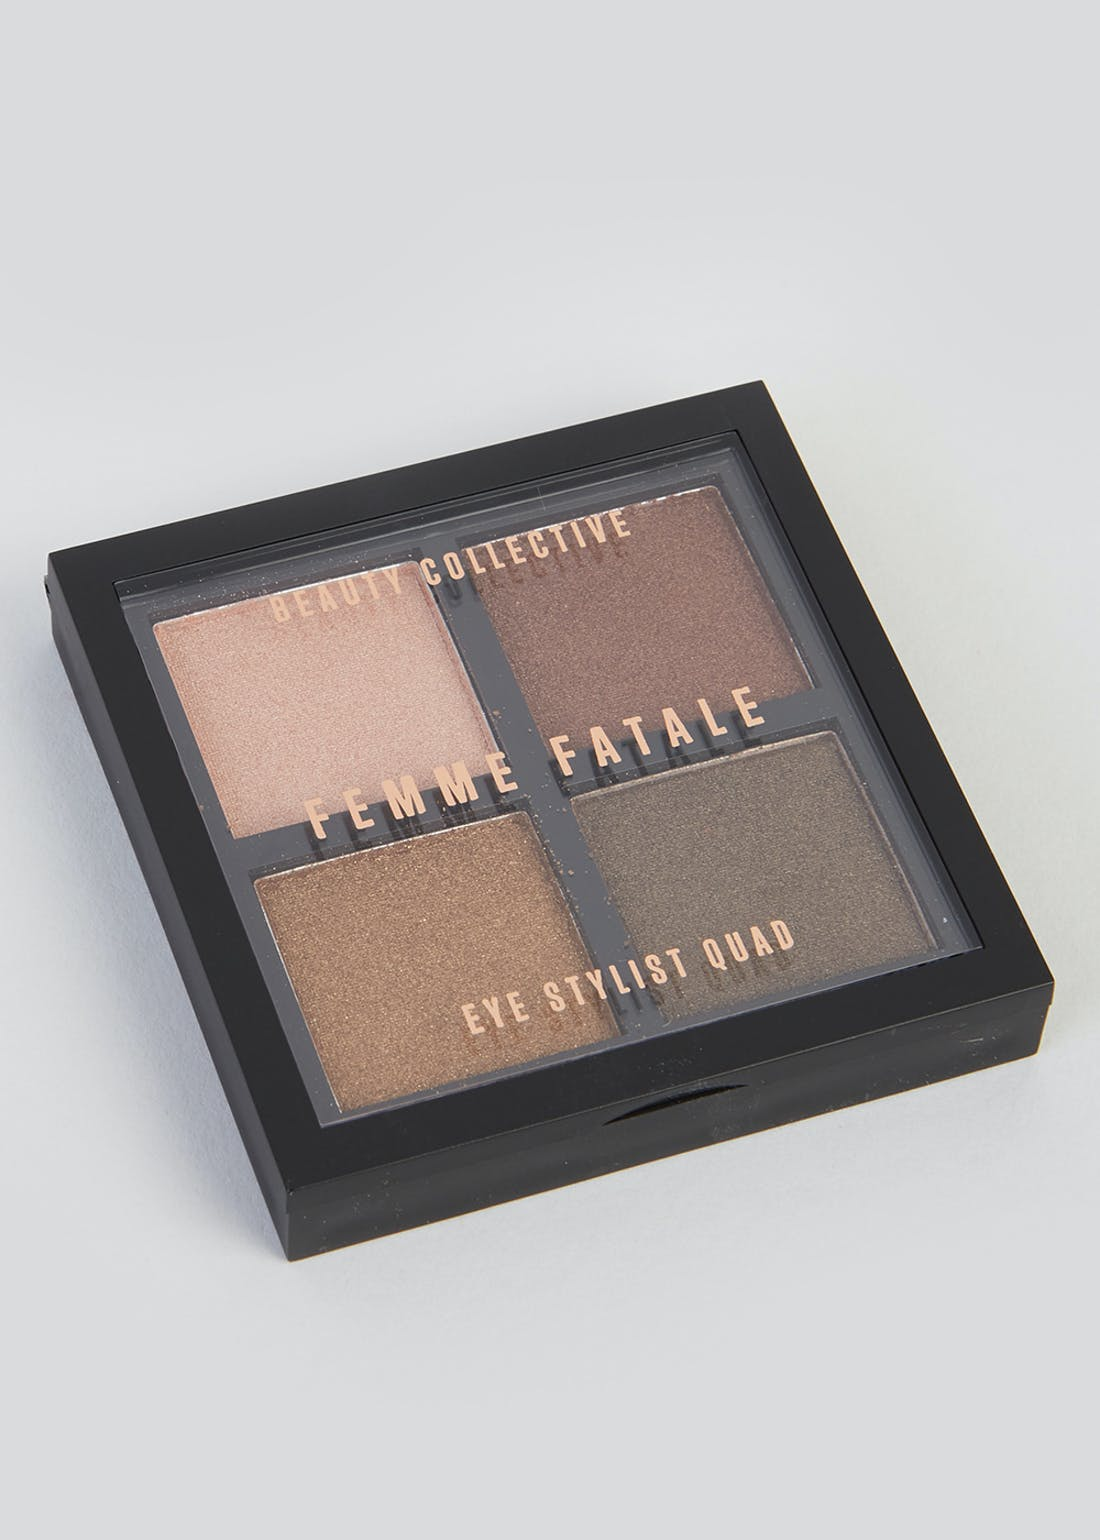 Beauty Collective Femme Fatale Eye Stylist Quad